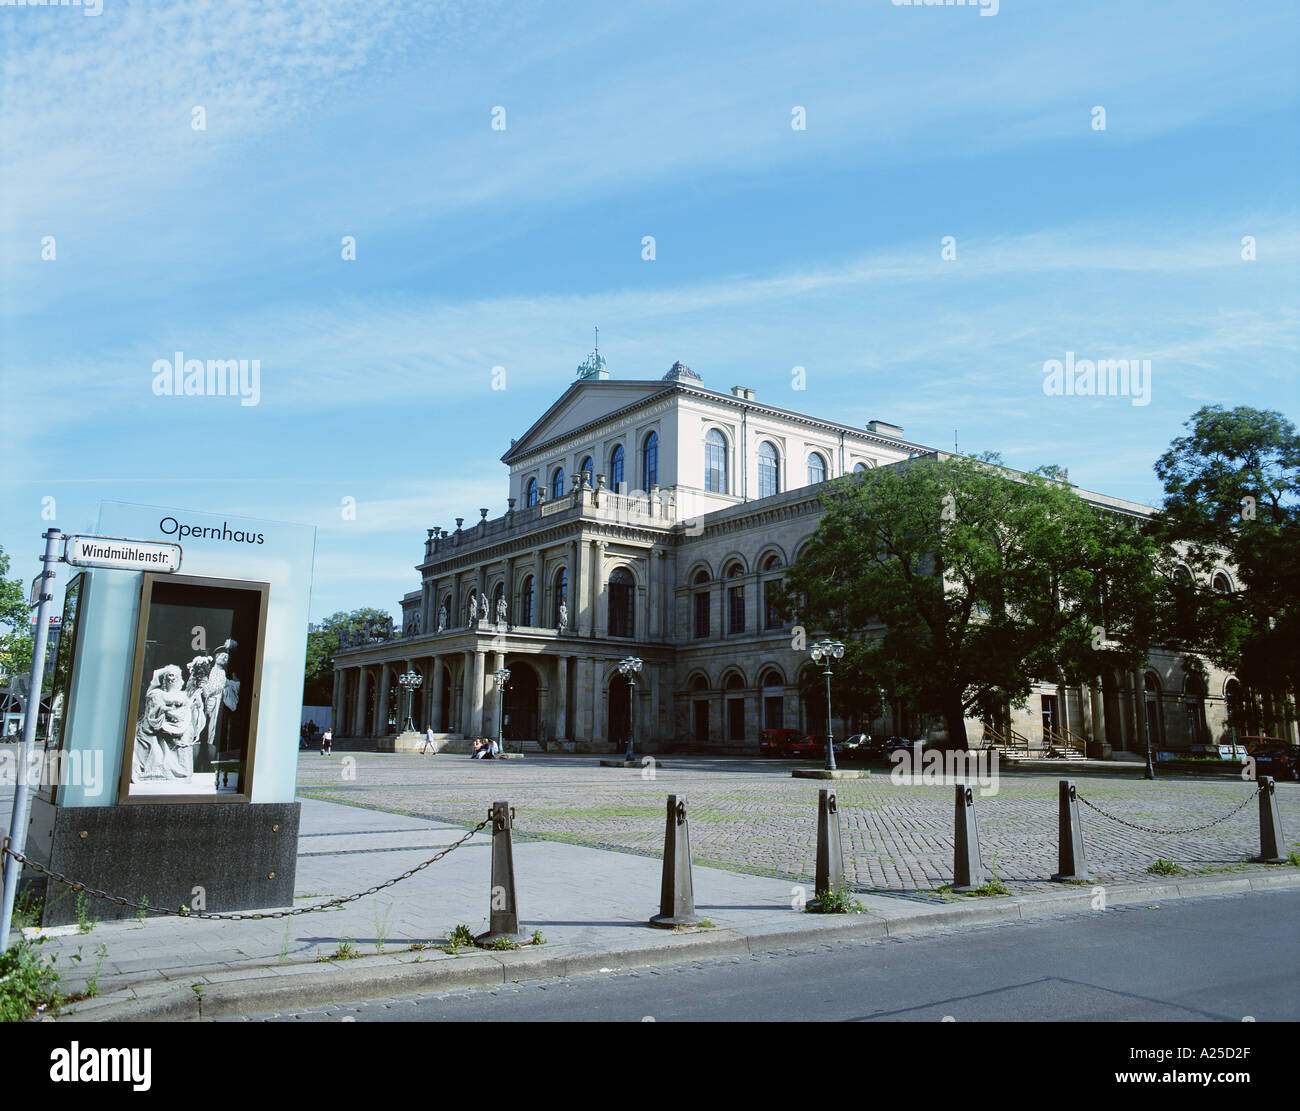 BUILDING HANNOVER GERMANY - Stock Image